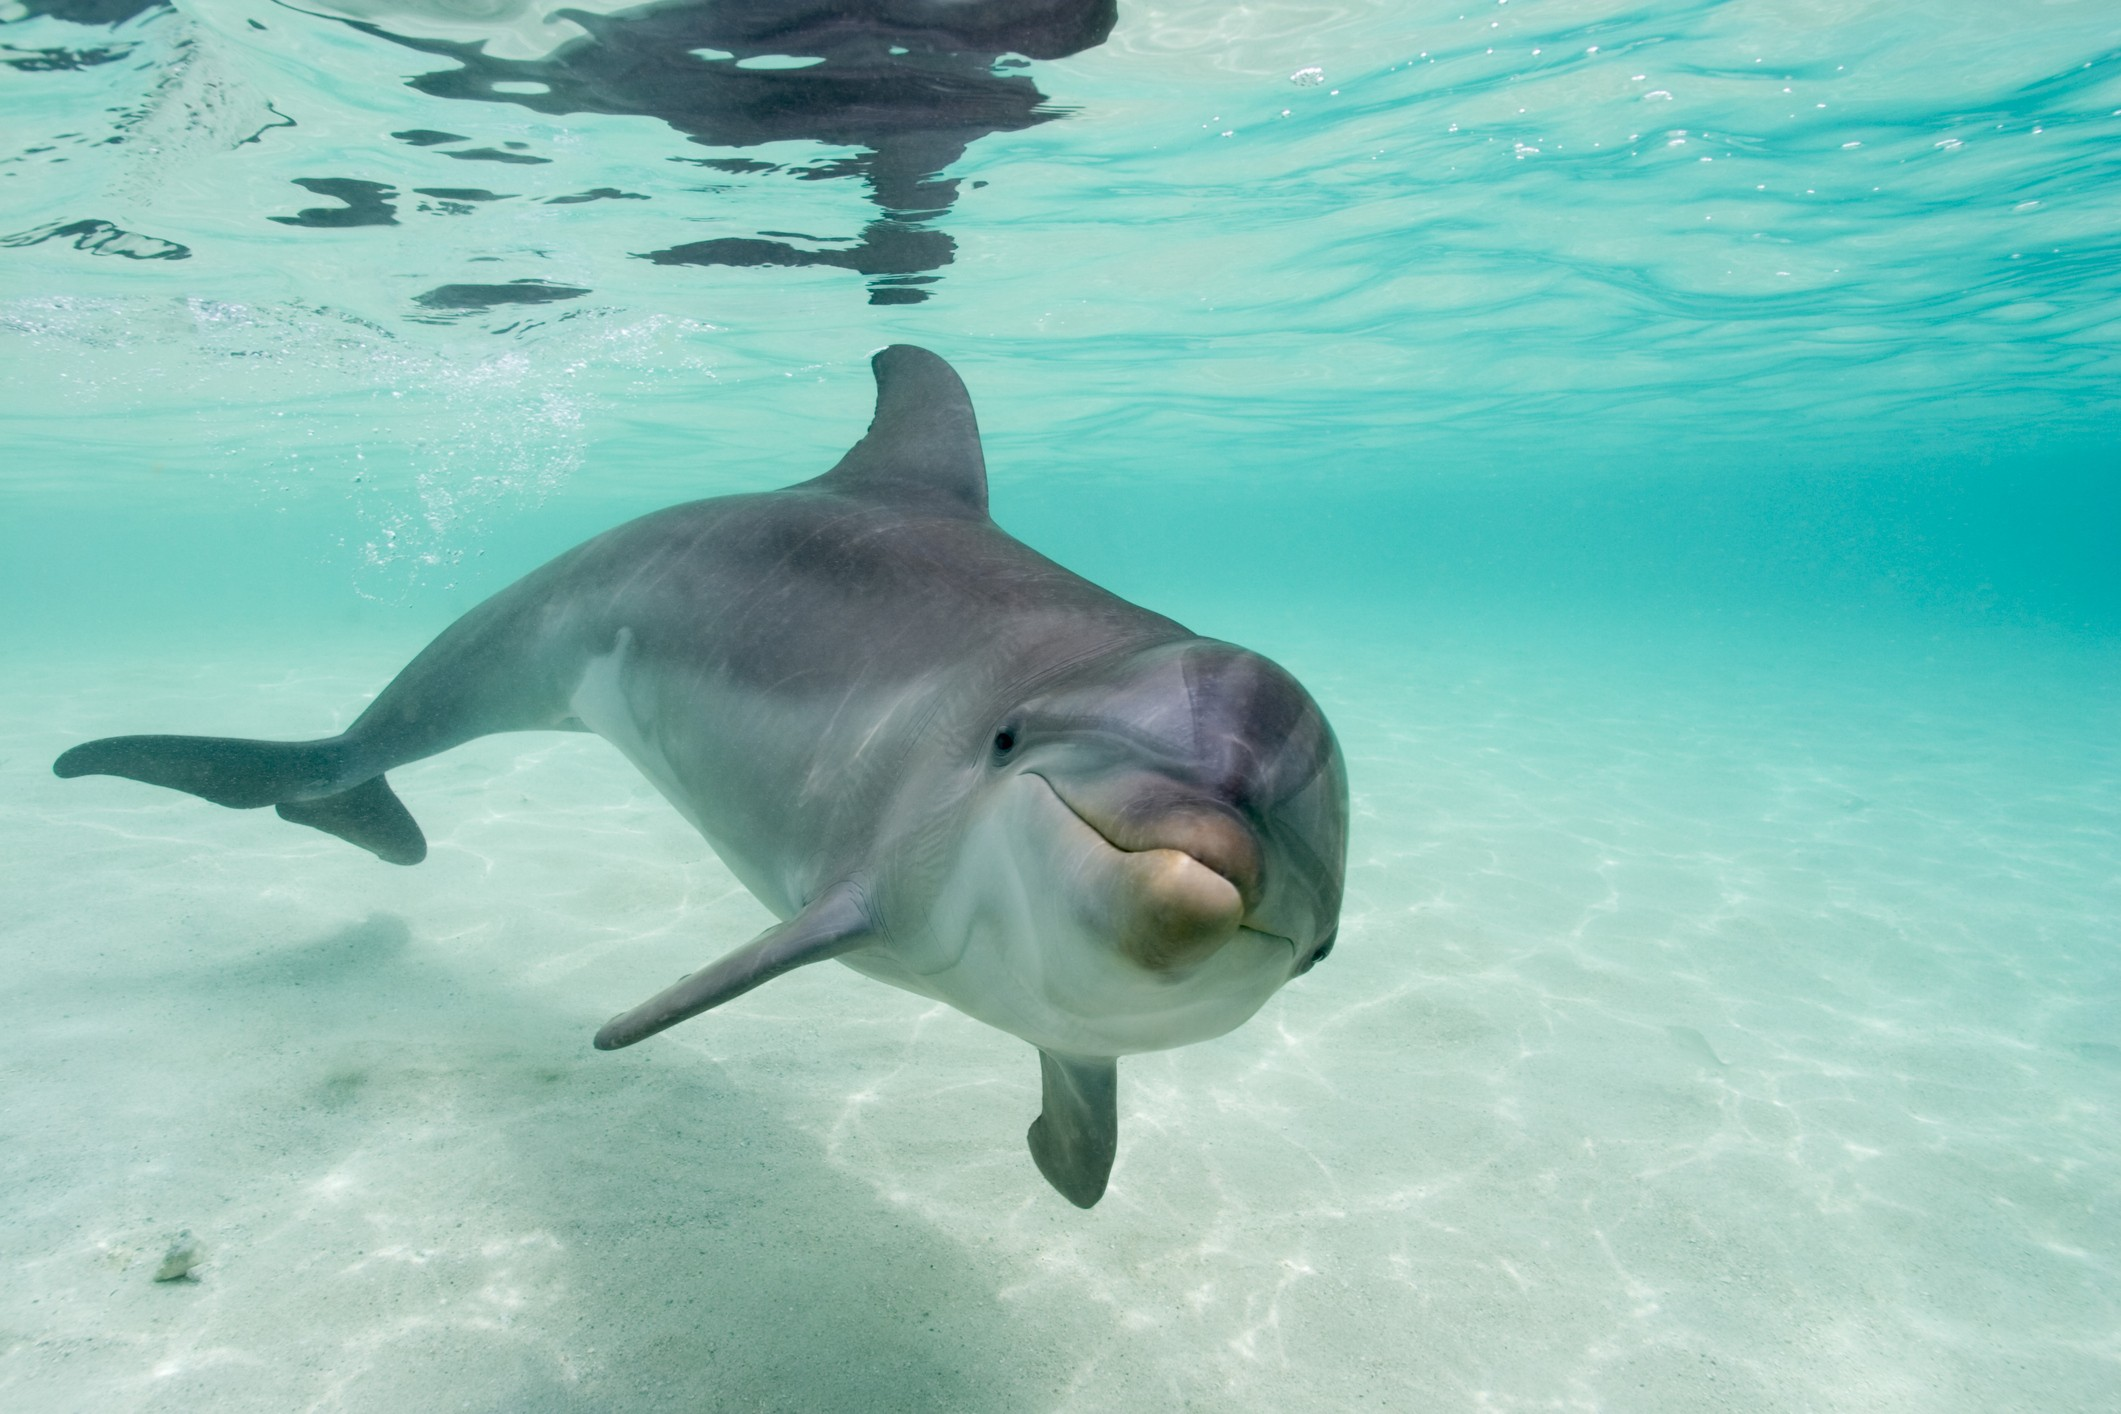 Bottlenose Dolphin (Tursiops truncatus) in Caribbean Sea near Roatan Island. | Location: near Roatan Island, Honduras. (Foto: Getty Images)